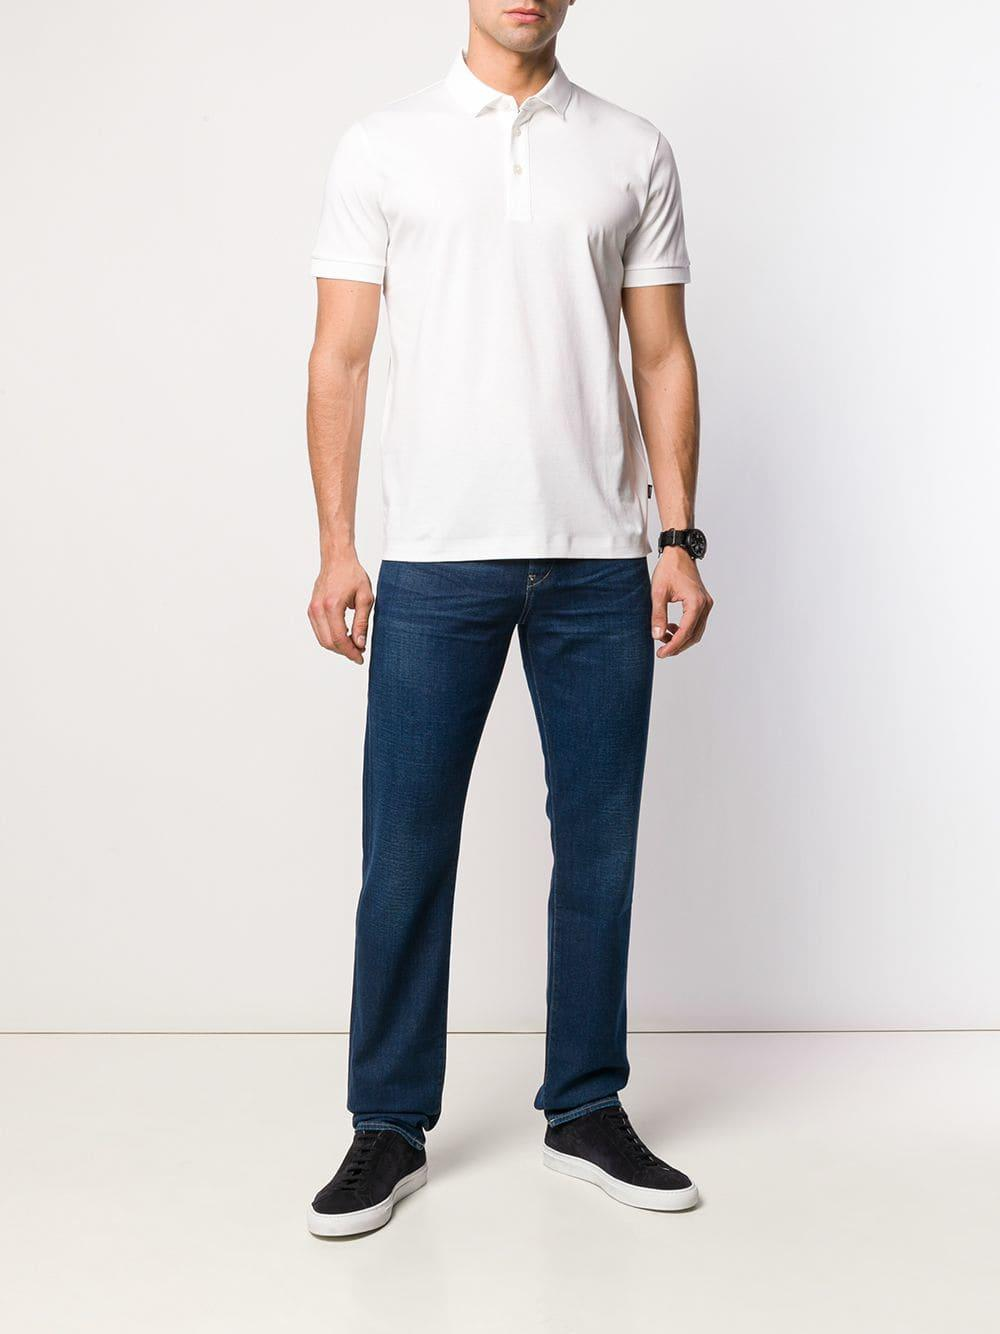 bfe33376 BOSS Prout Polo Shirt in White for Men - Lyst